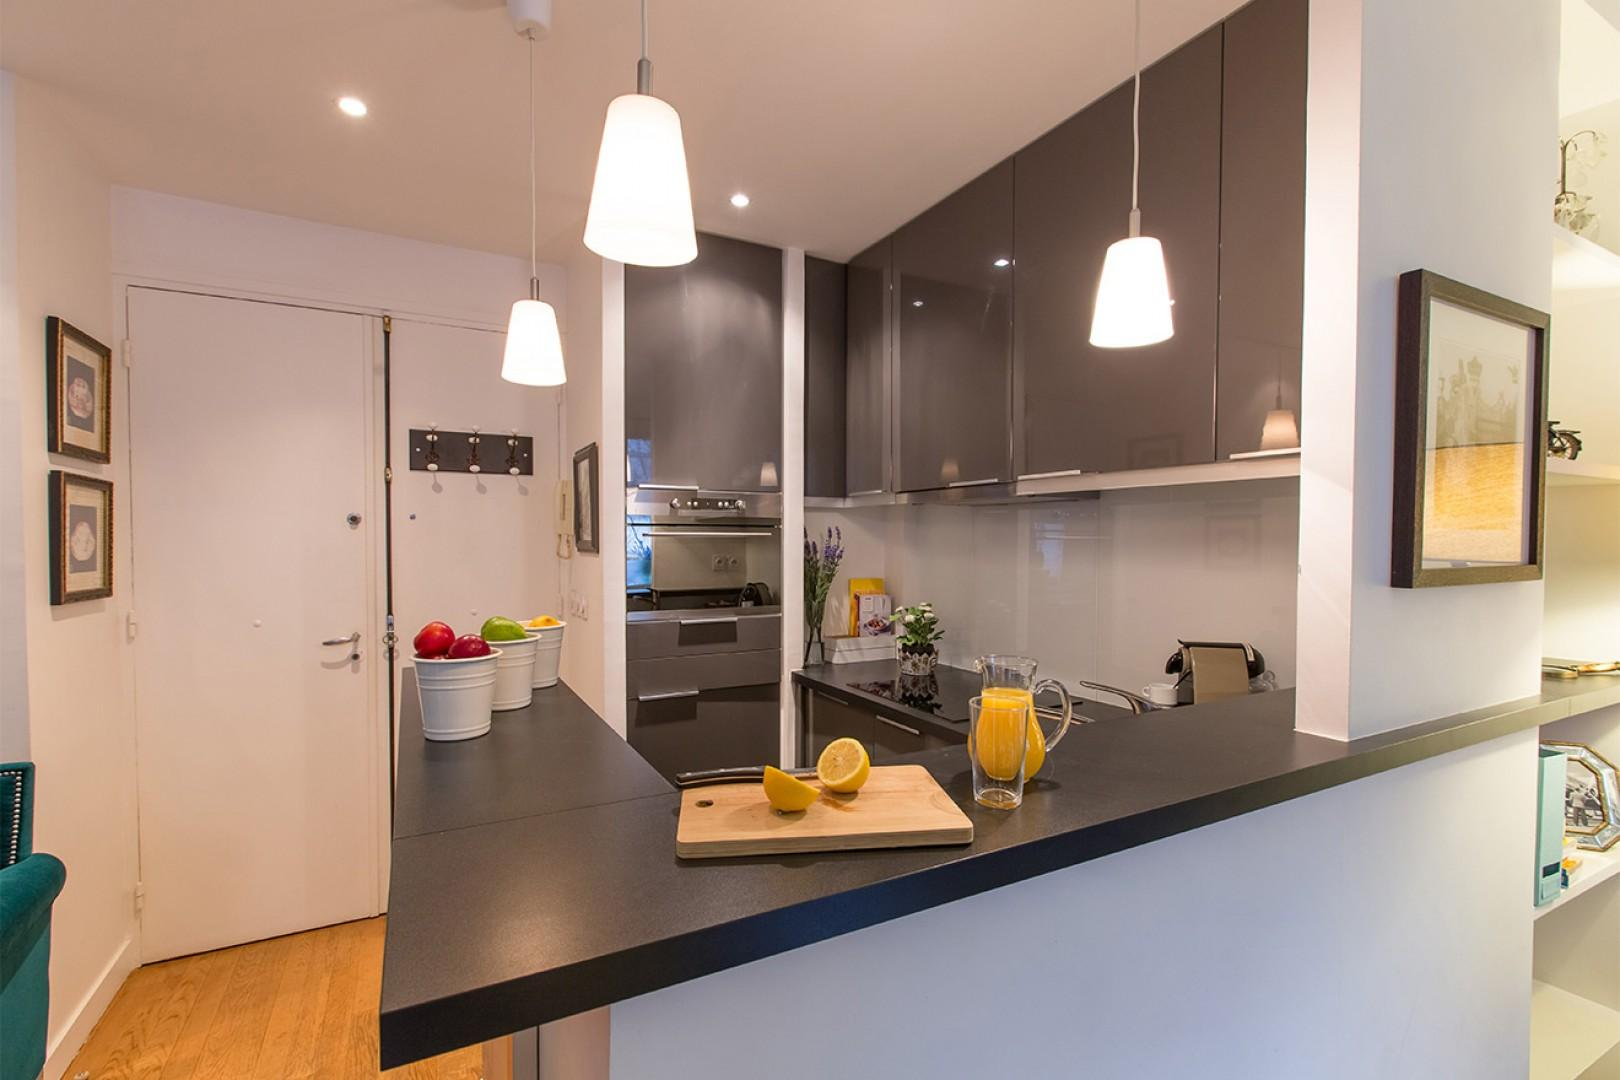 The cleverly designed compact kitchen gives you lots of space to cook.